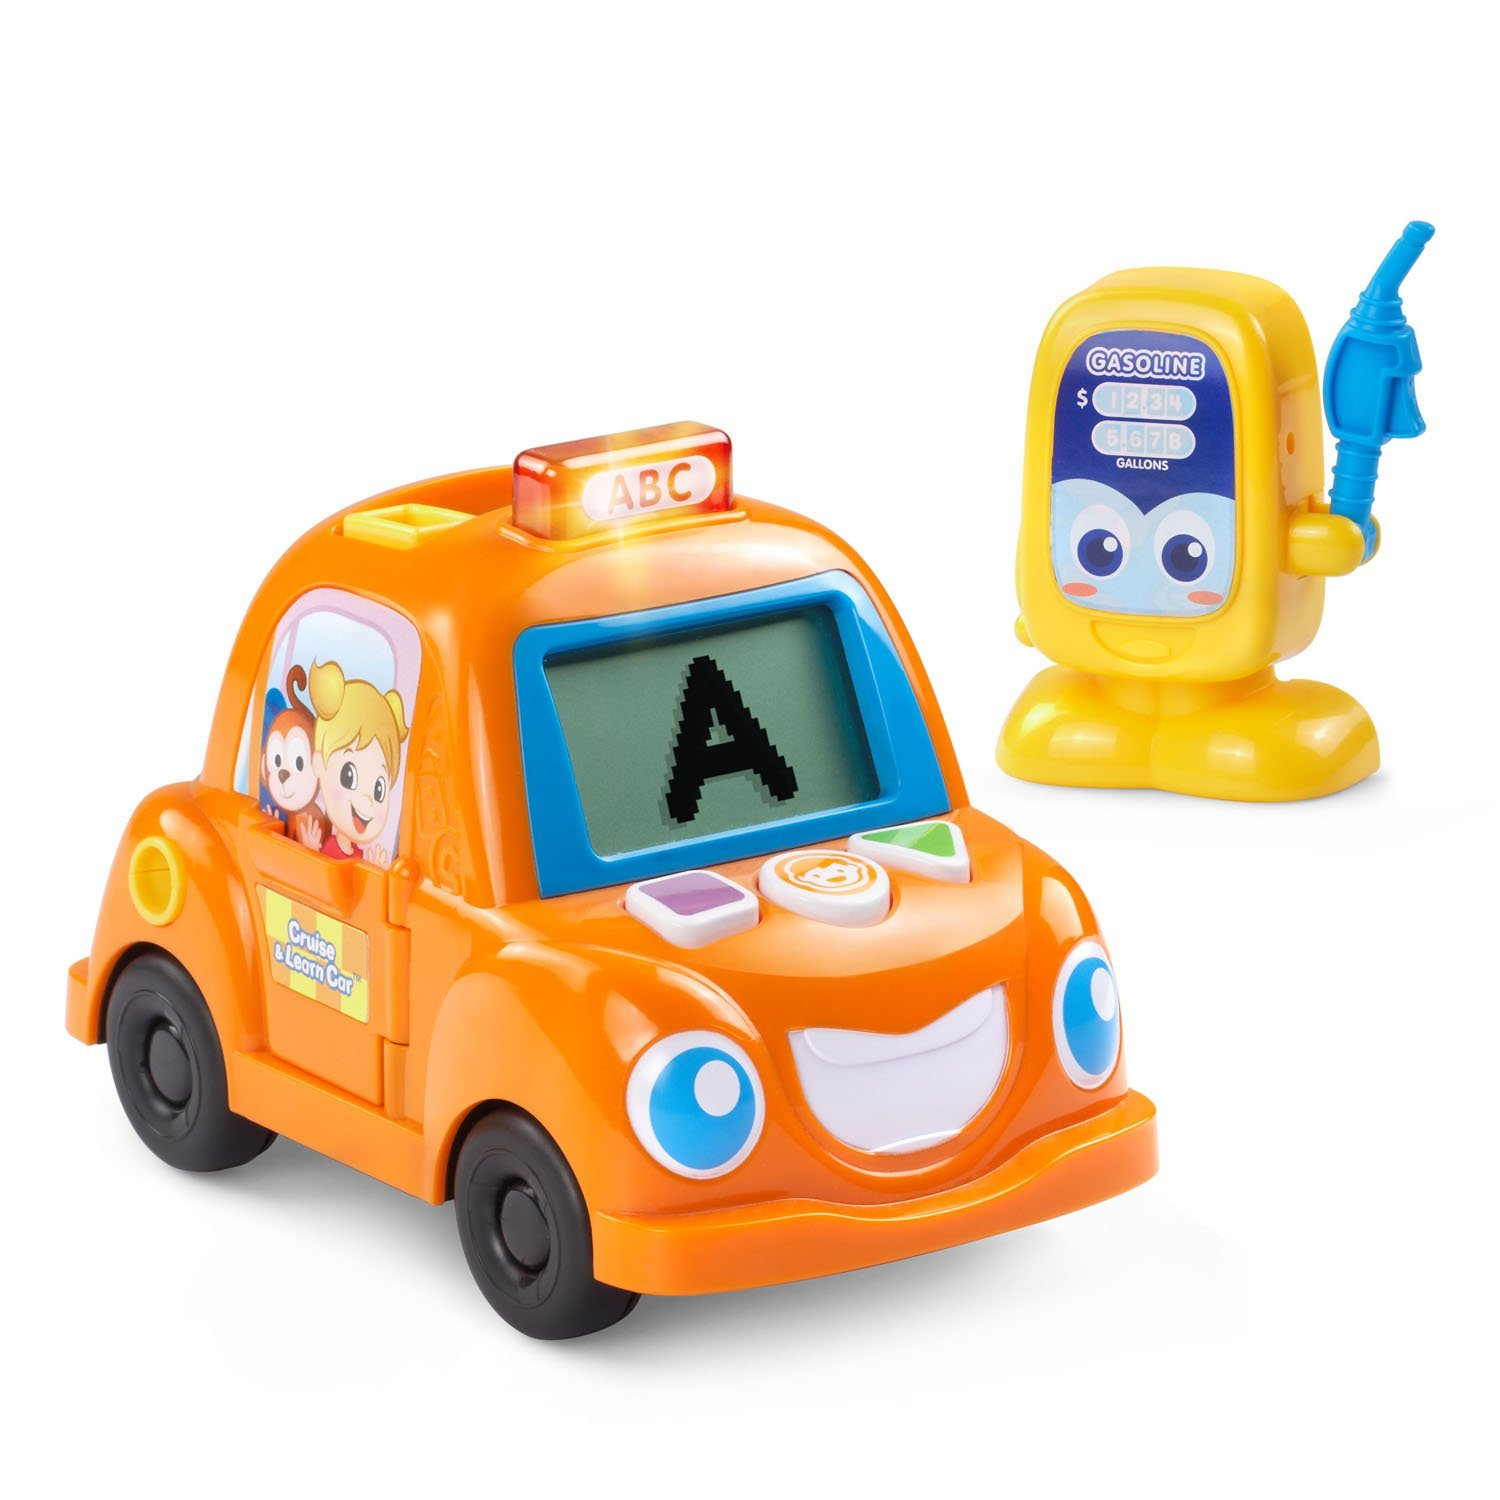 Cruise and Learn Car, Interactive toy car has 4 activities that teach letters, words,... by